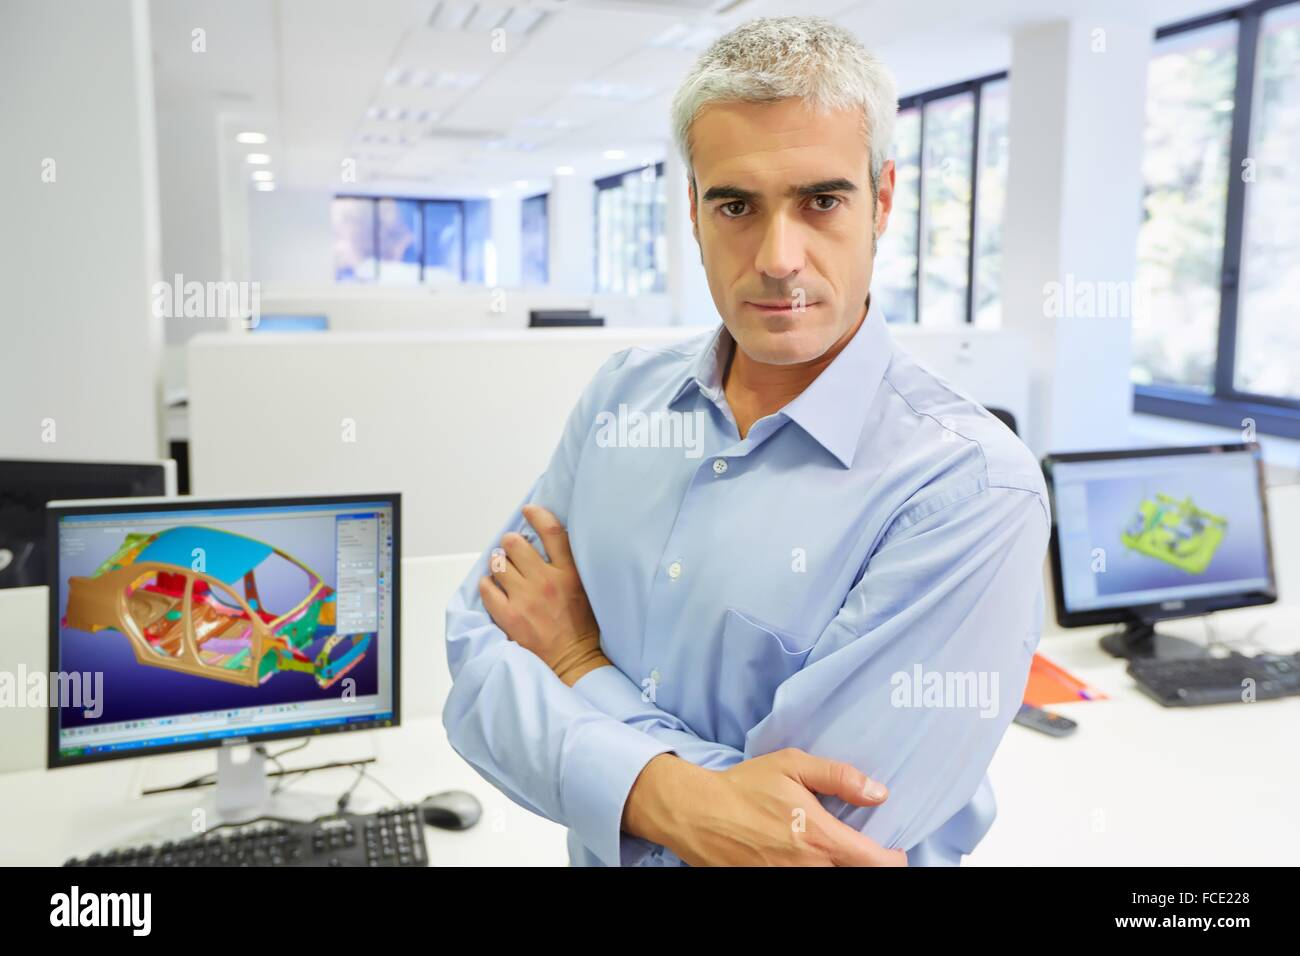 Industrial Engineer. Advanced Simulation of lightweight structures for the transport industry. Basque Country. Spain. - Stock Image